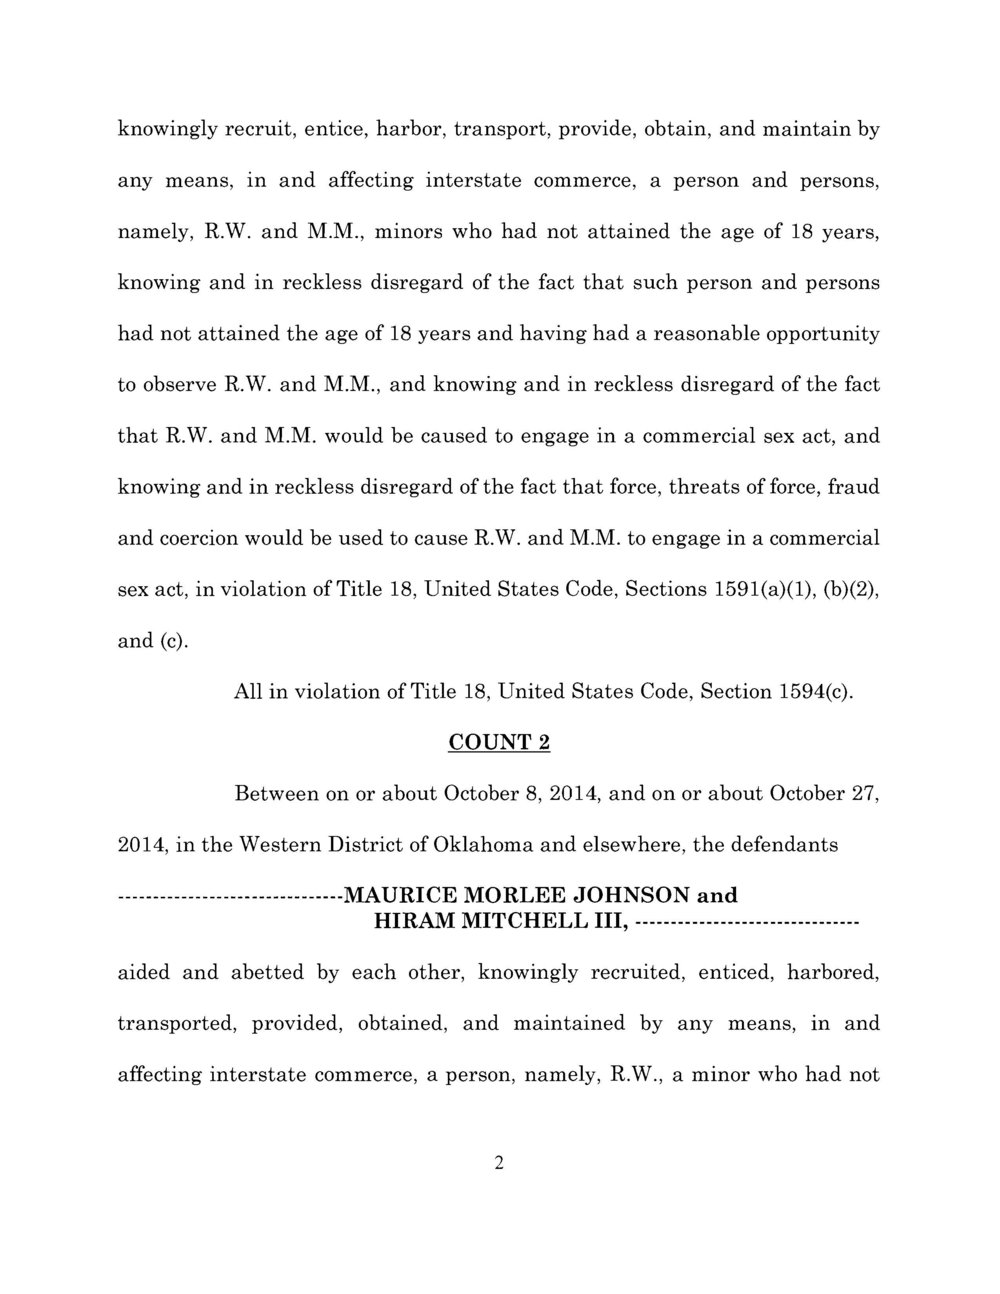 Maurice Johnson Indictment_Page_02_Image_0001.jpg